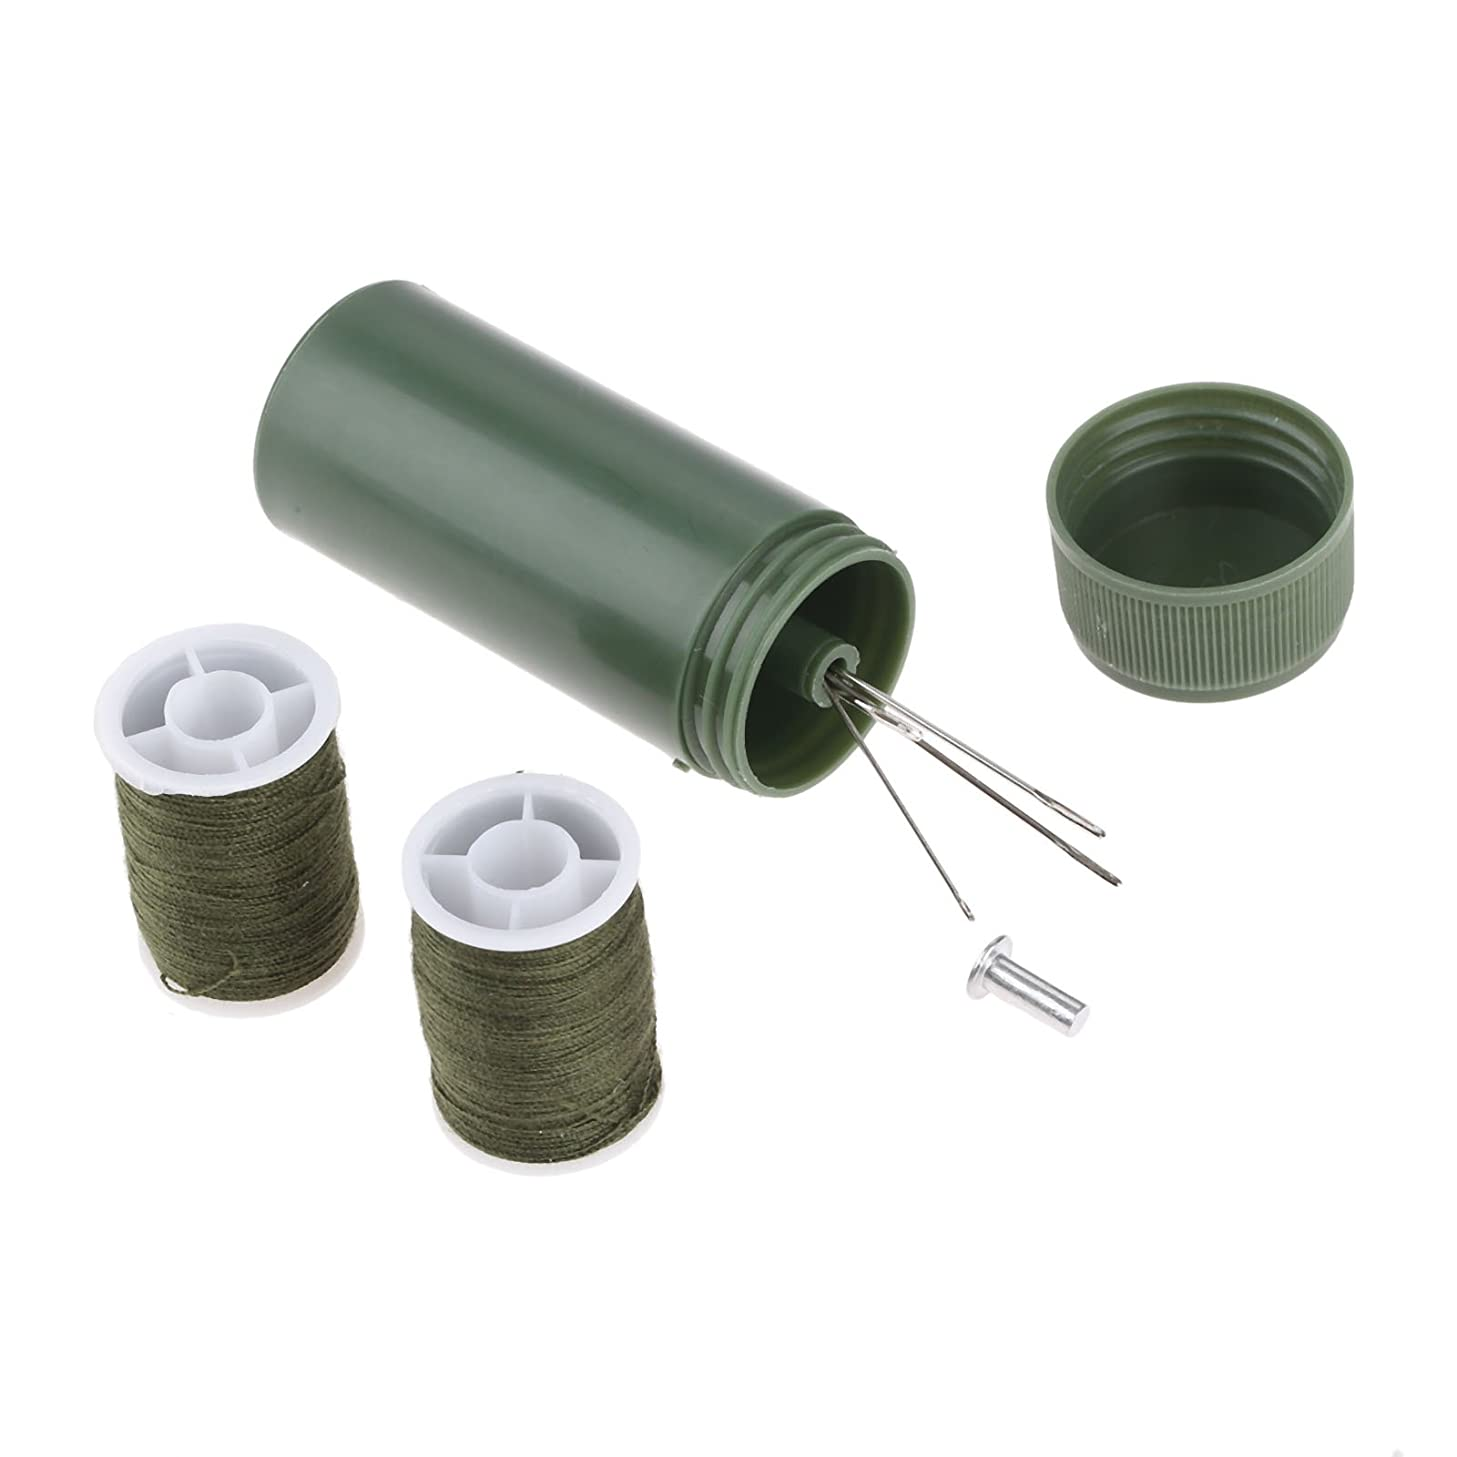 Mtsooning Portable Mini Travel Household Sewing Tube Set Sewing Kit Home Tools